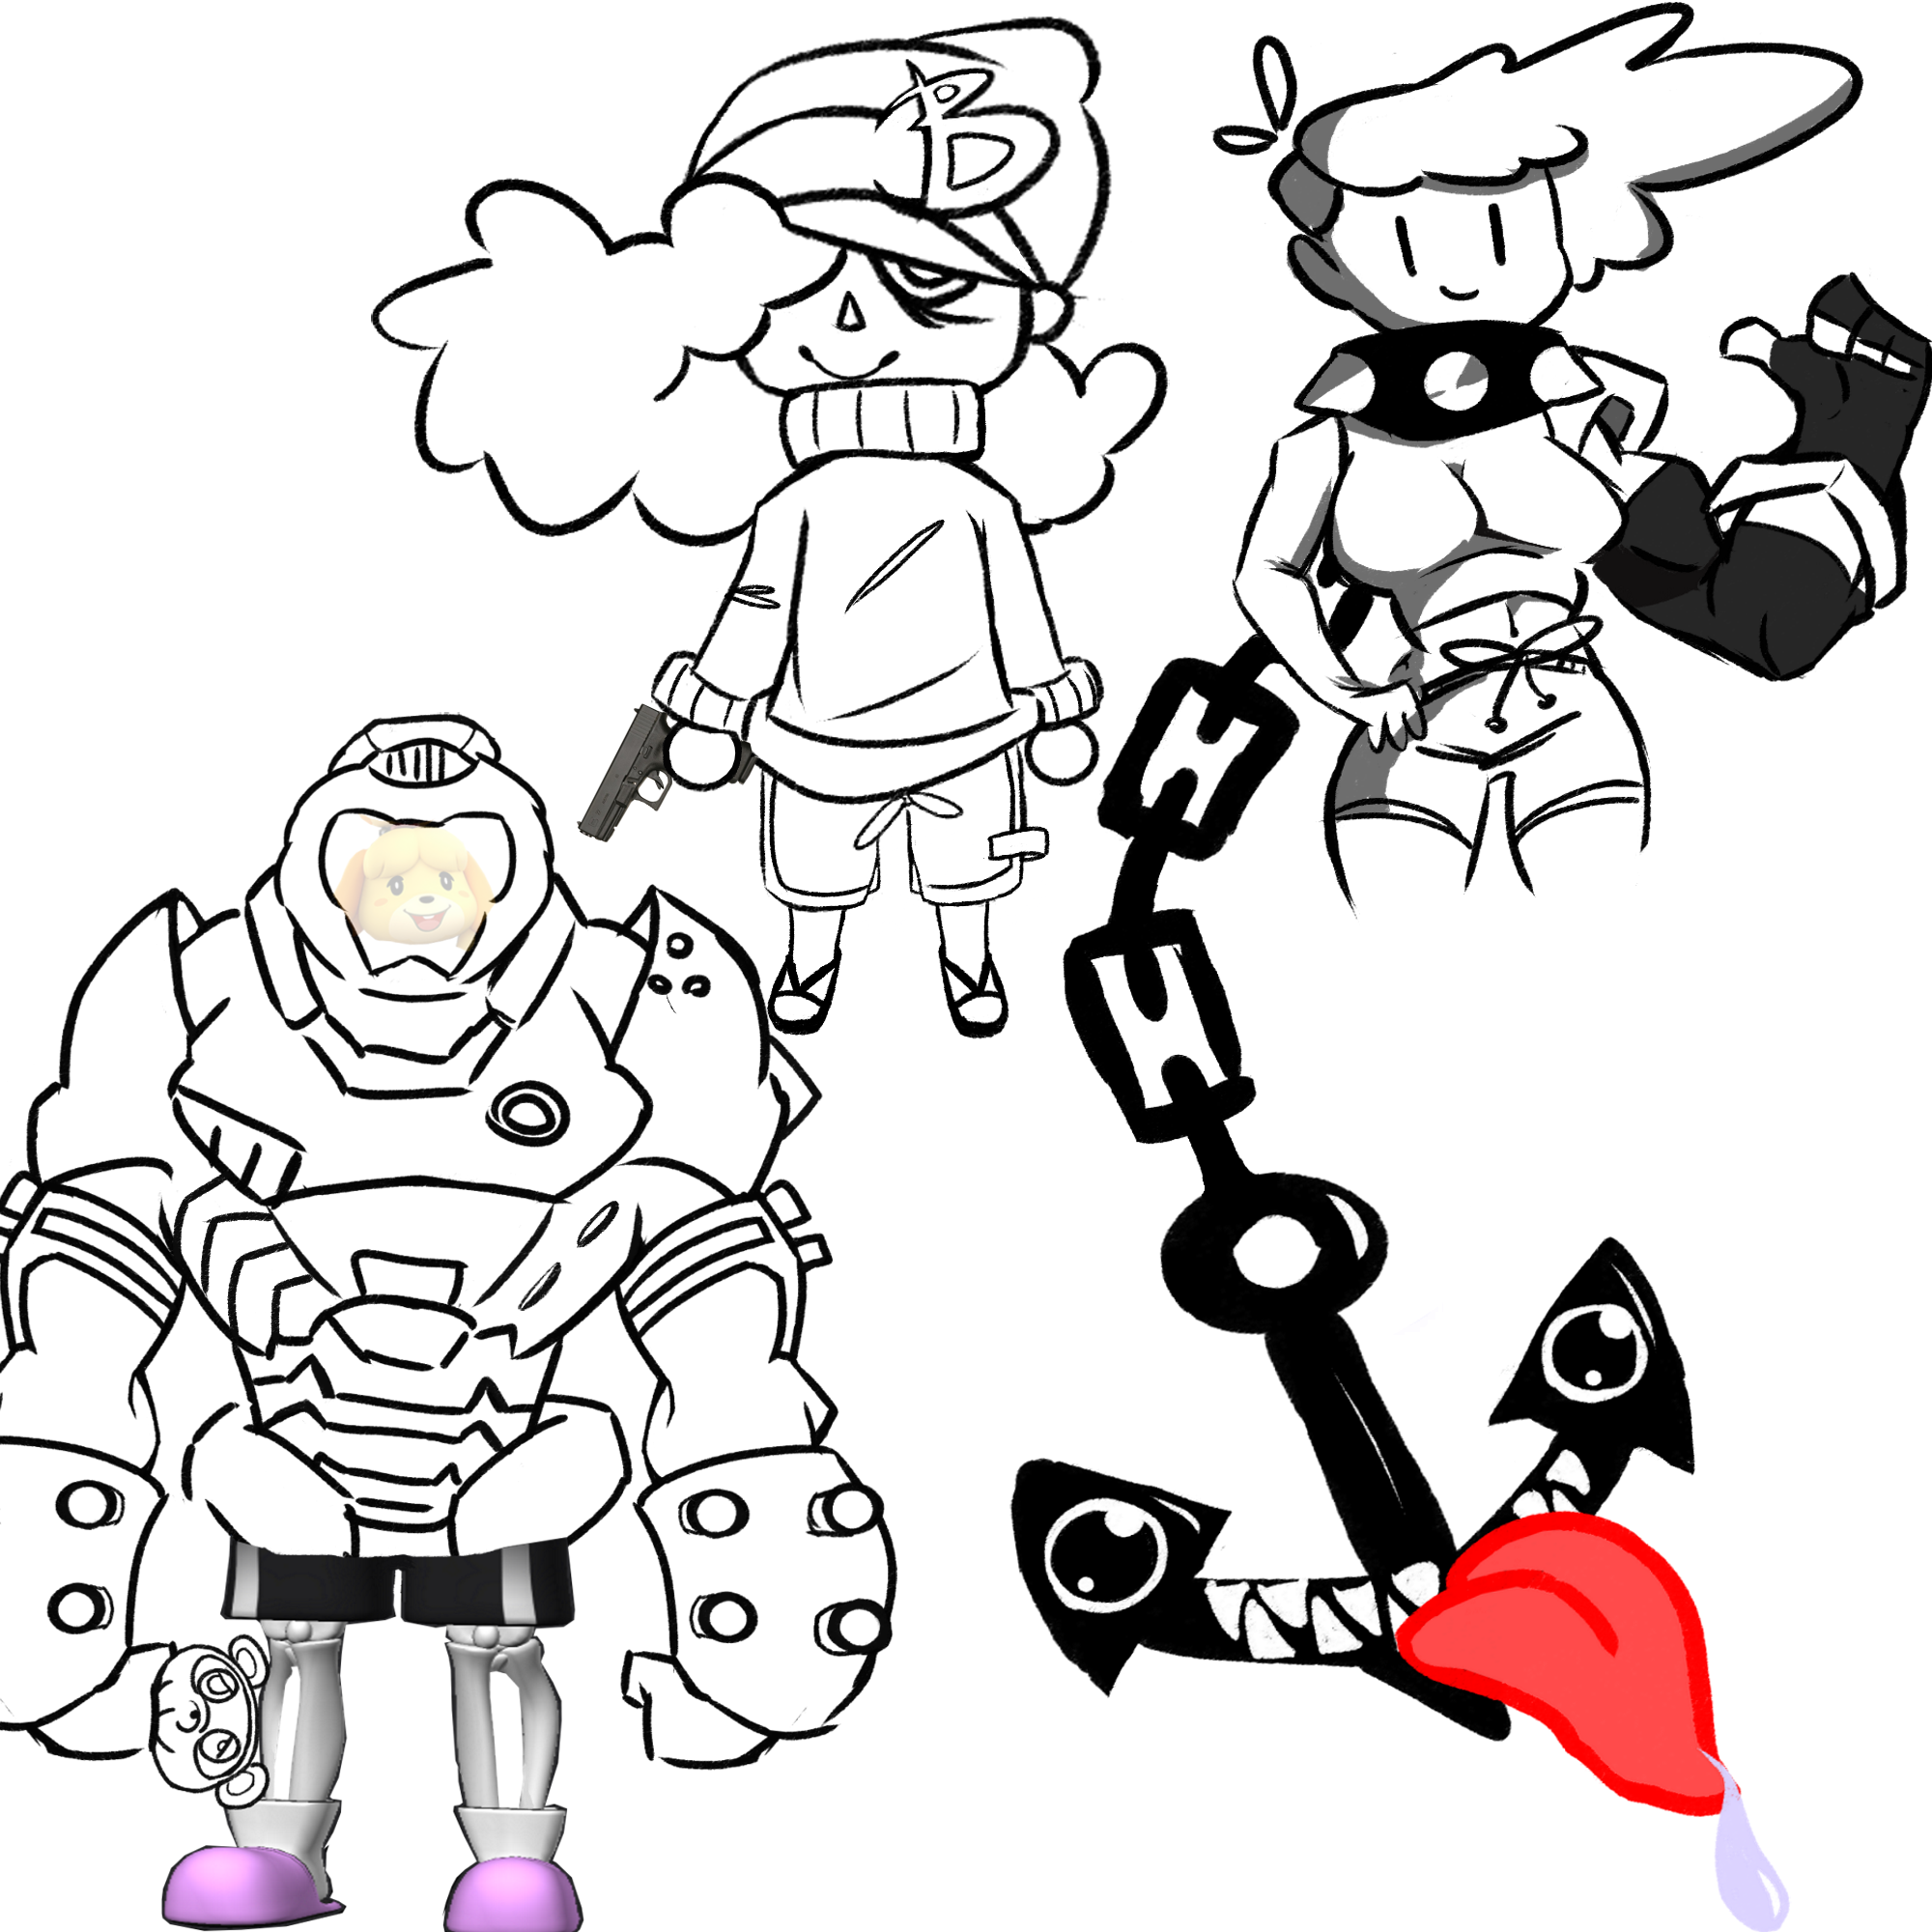 Drawpile/Doodle thingy